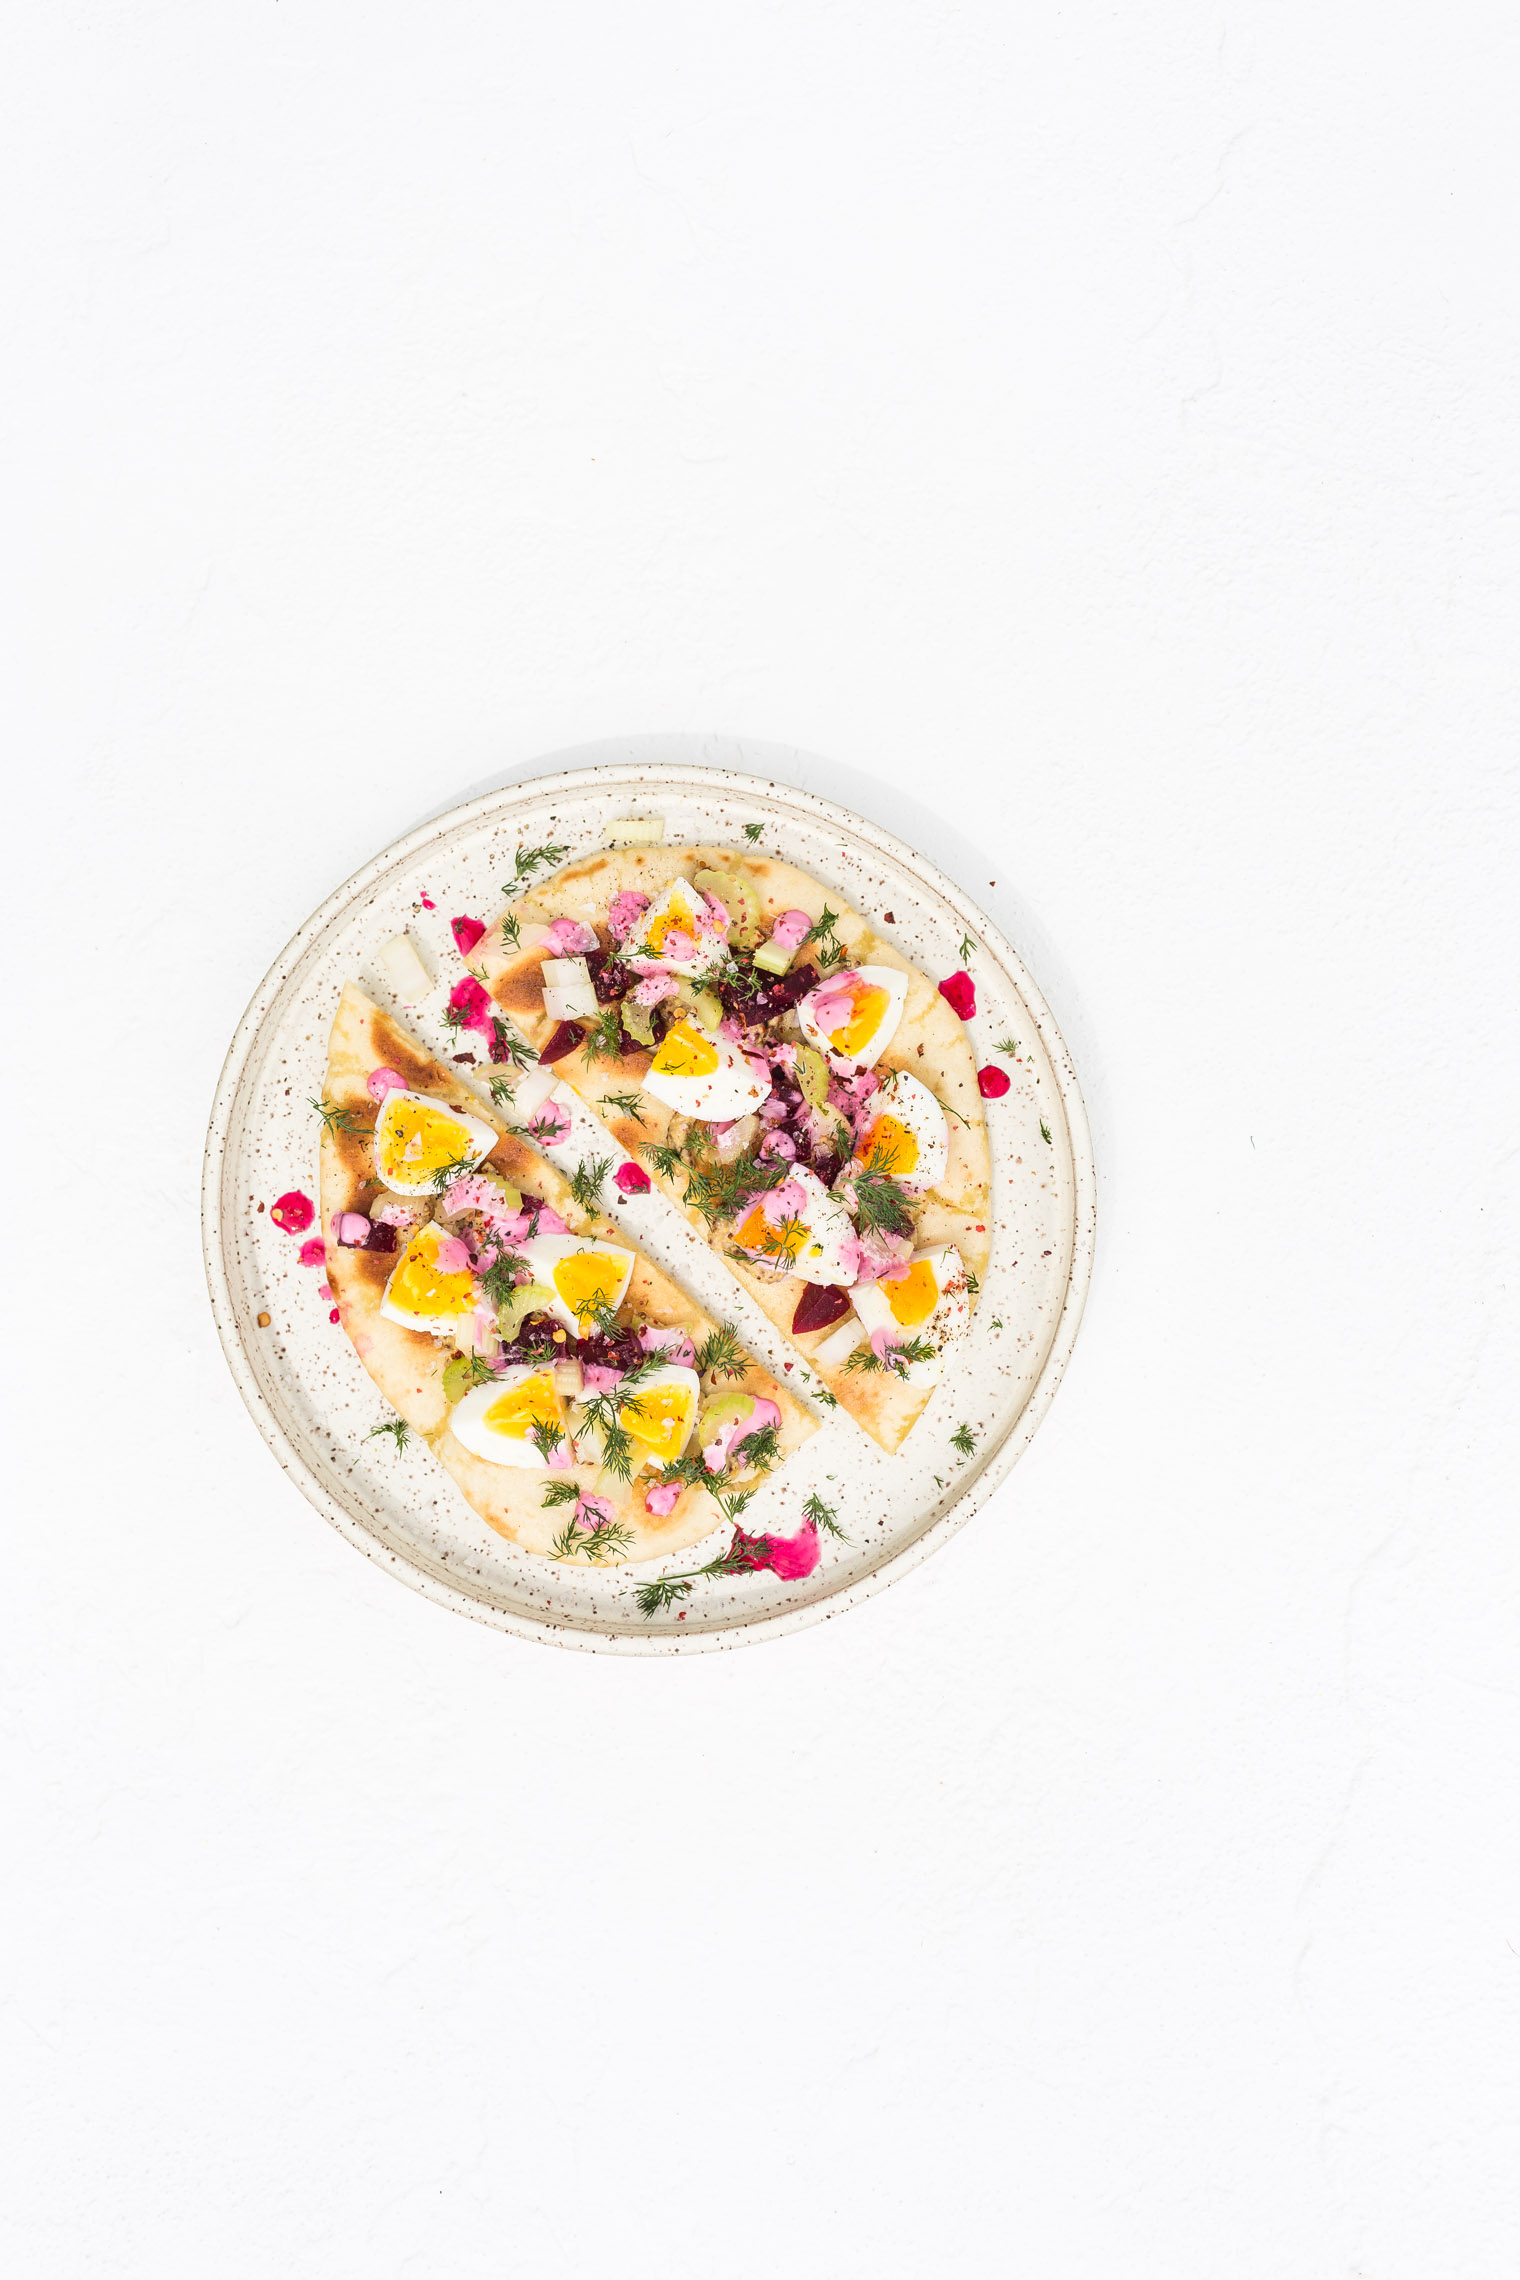 Egg Salad Recipe with Pink Mayo and Pickled Beets for One